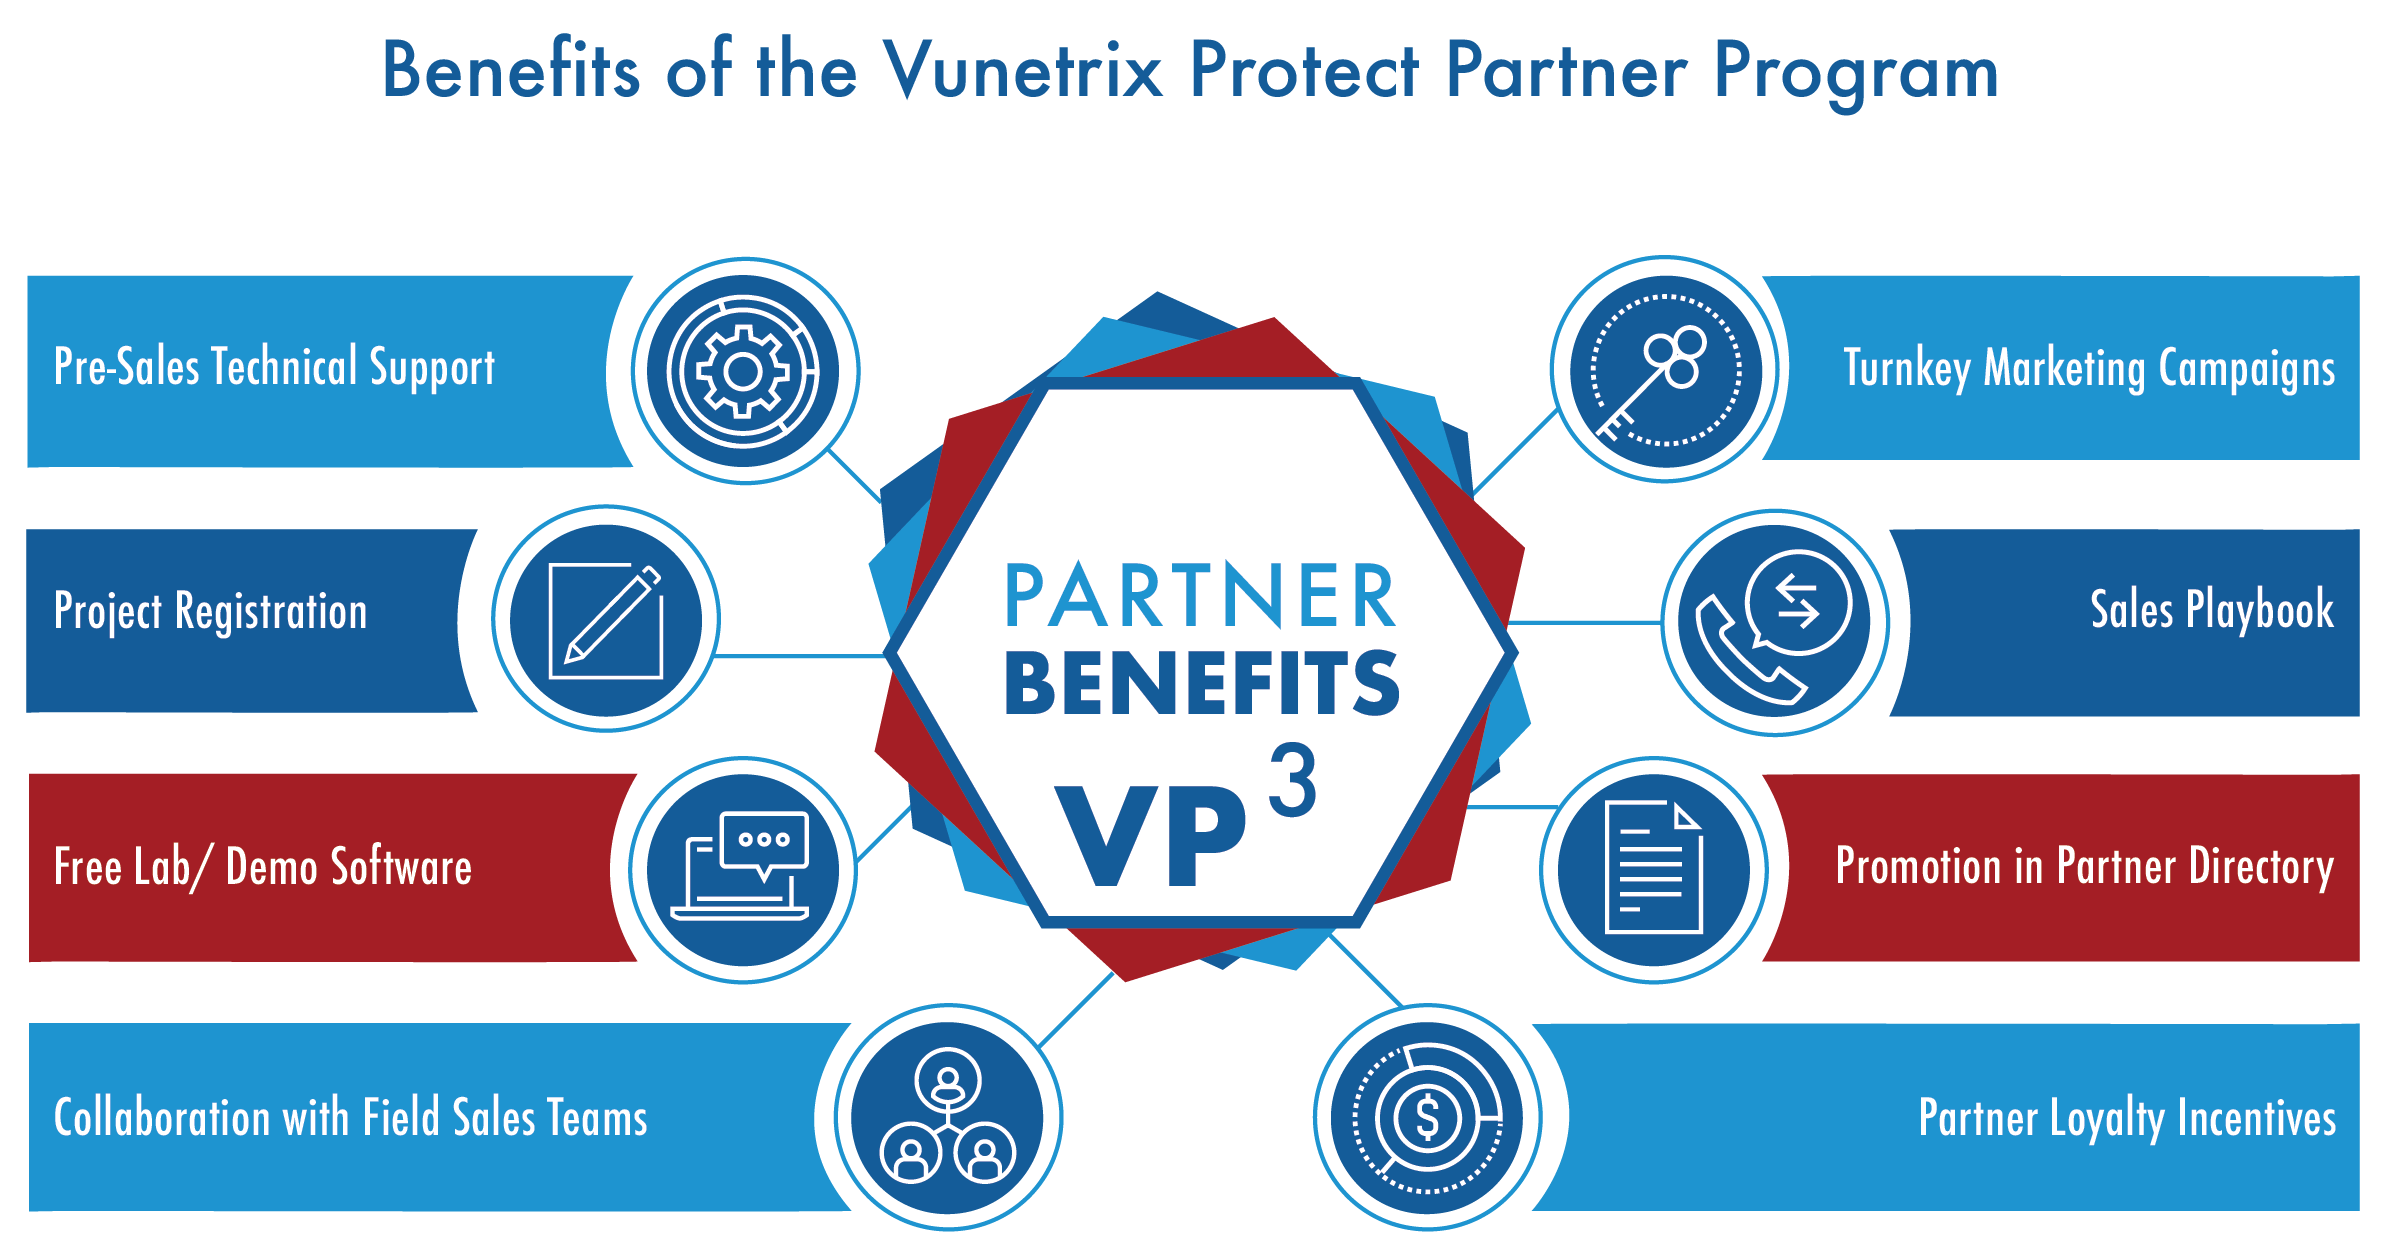 Vunetrix Partner Program